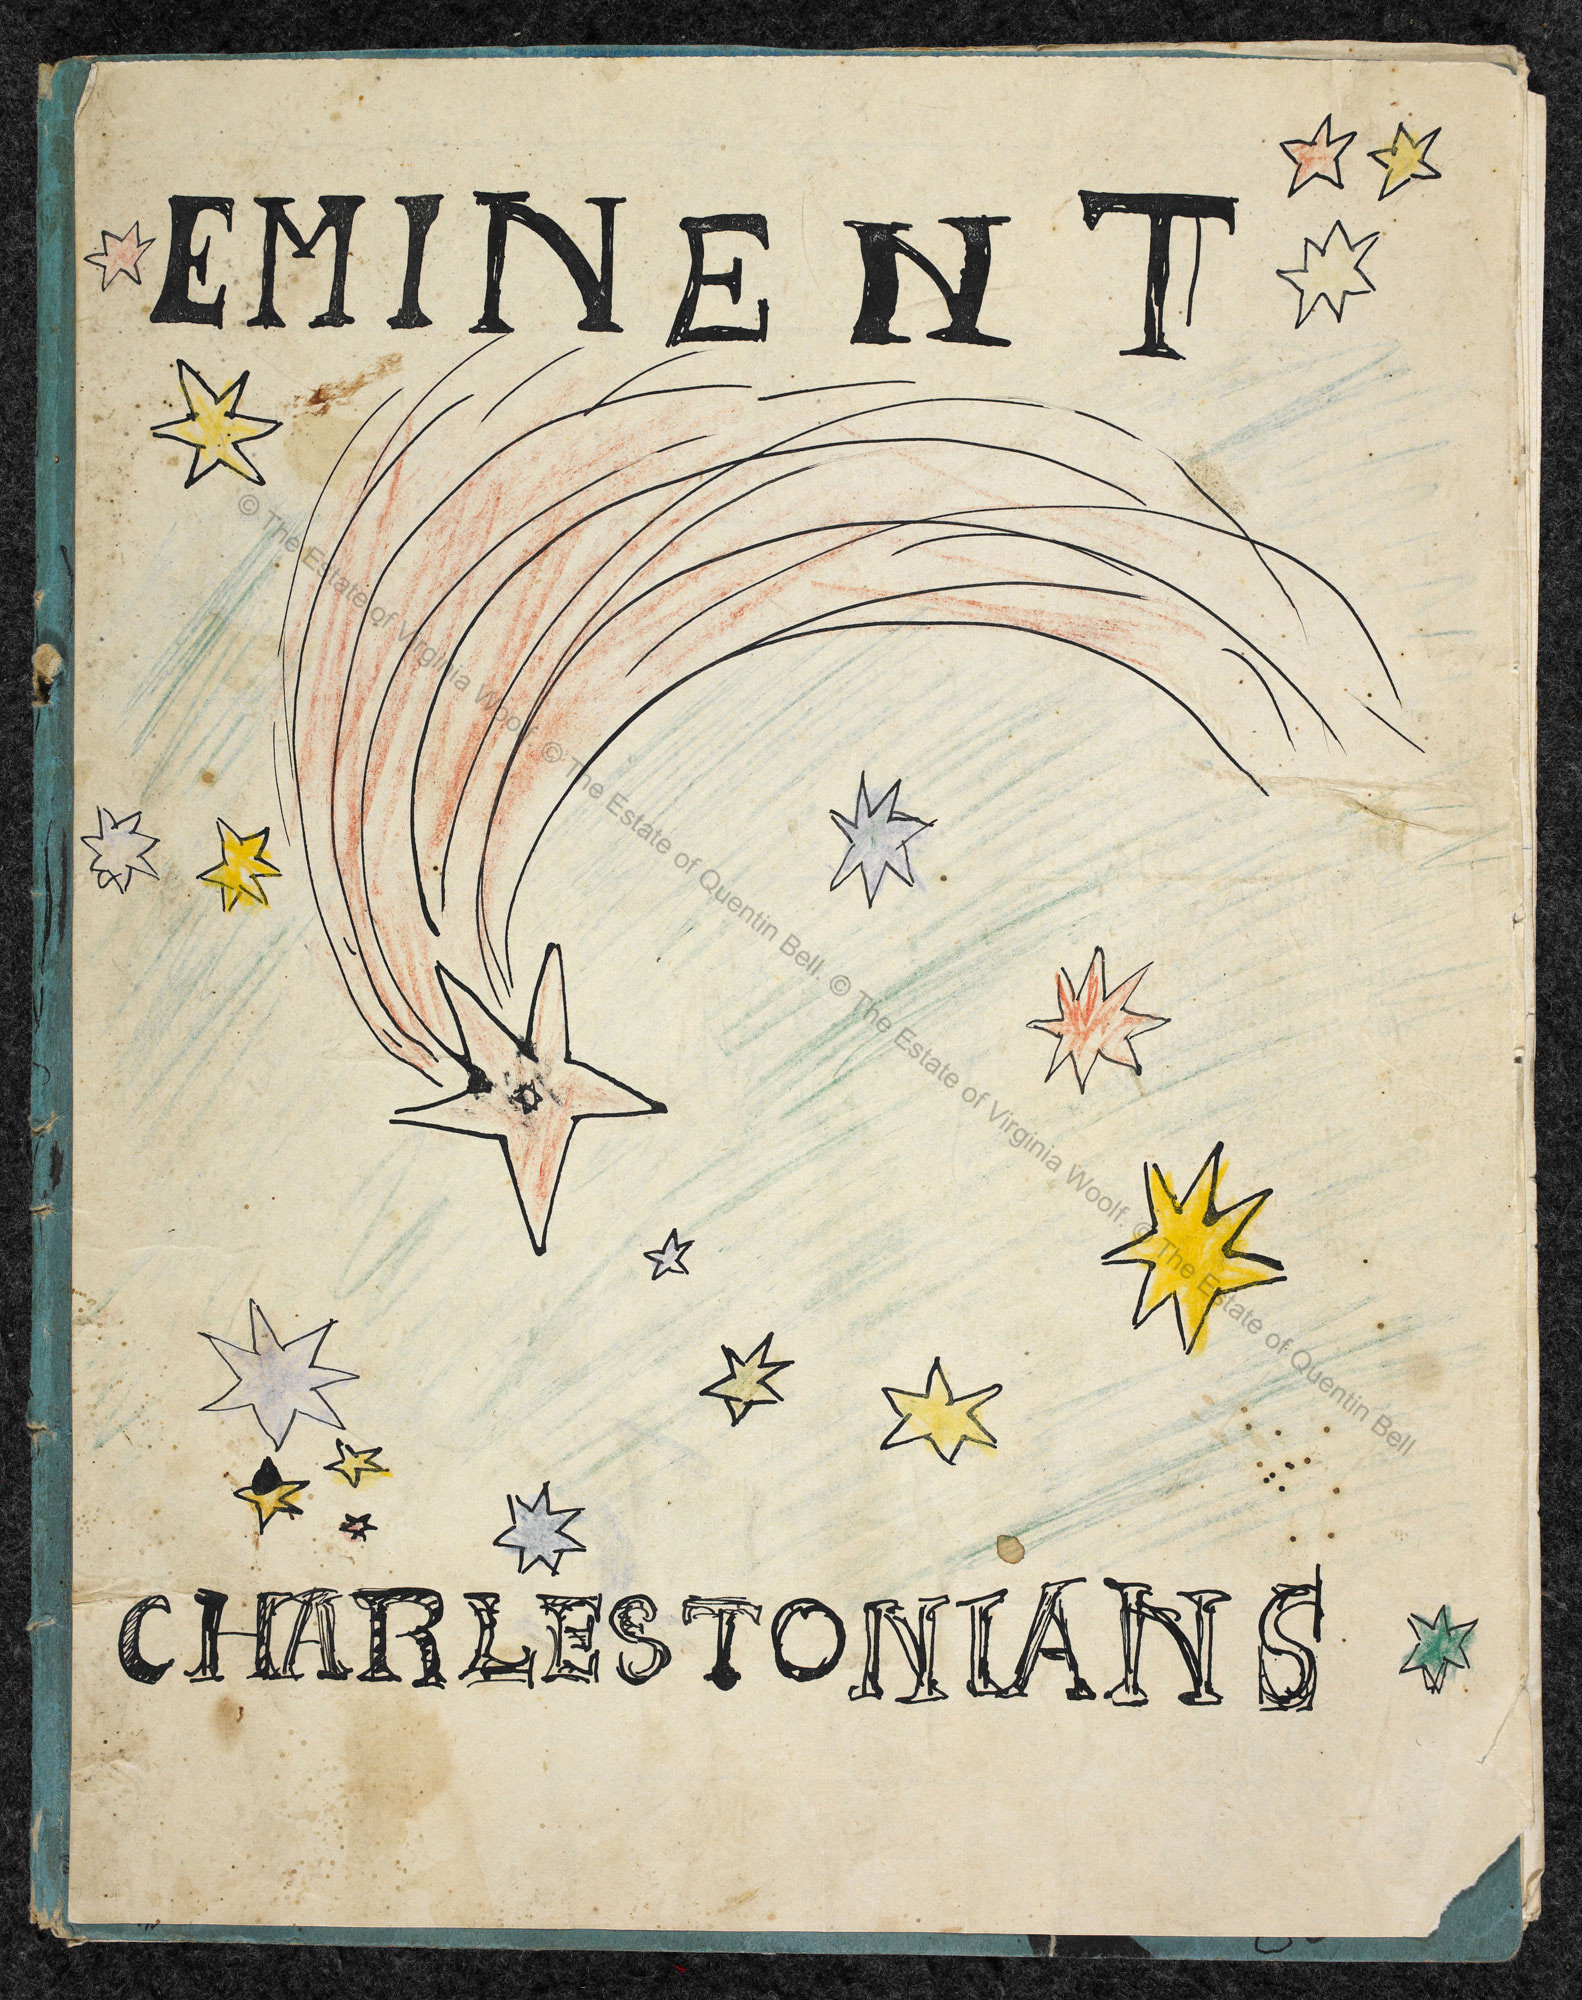 'Eminent Charlestonians', with illustrations by Quentin Bell and text by Virginia Woolf